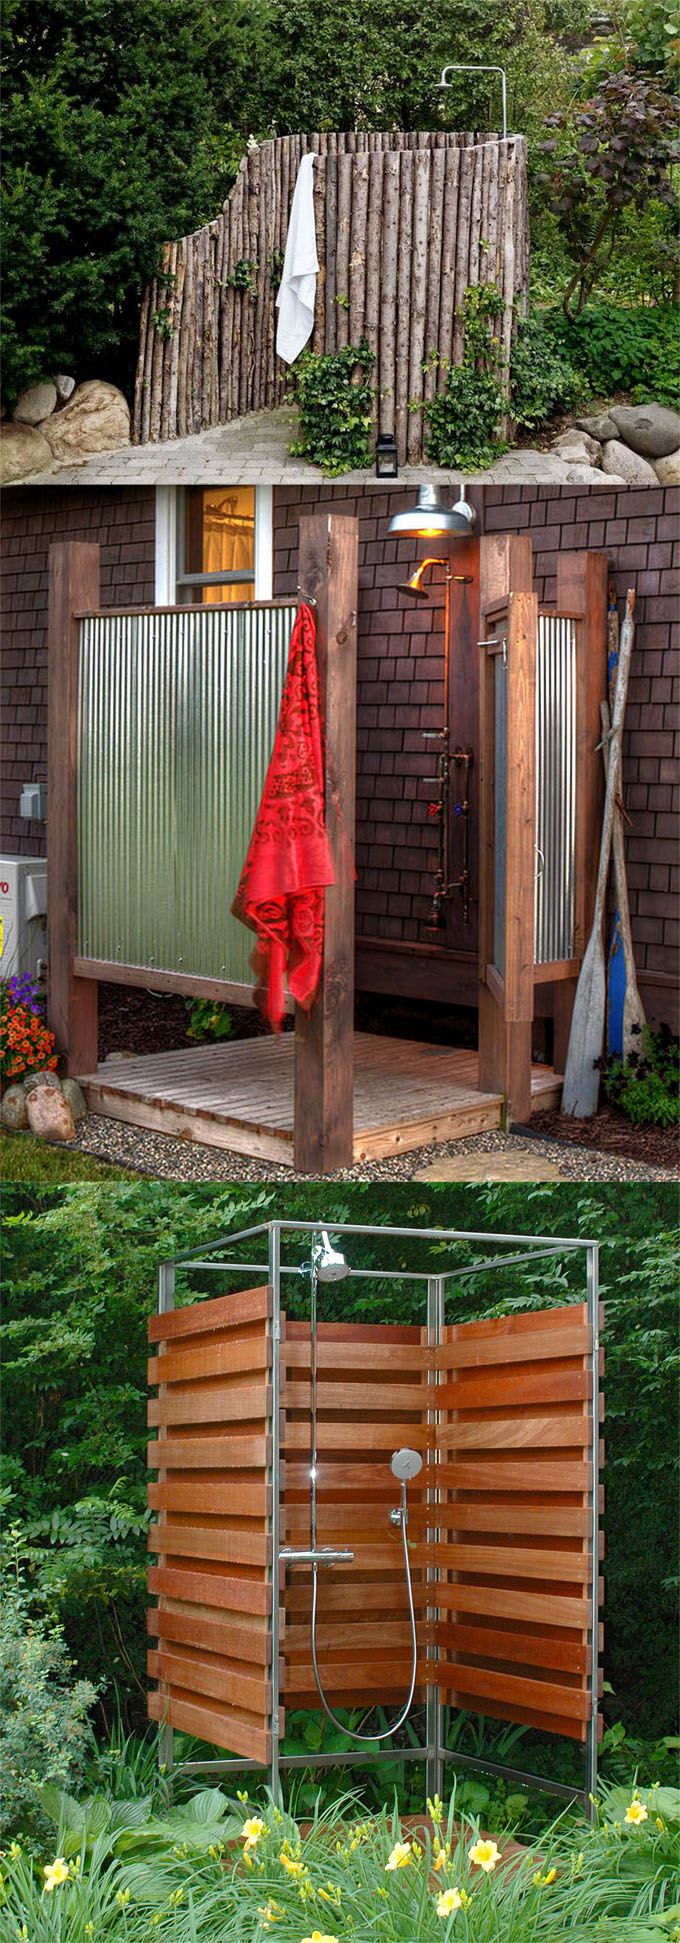 16 diy outdoor shower ideas shower fixtures creative. Black Bedroom Furniture Sets. Home Design Ideas